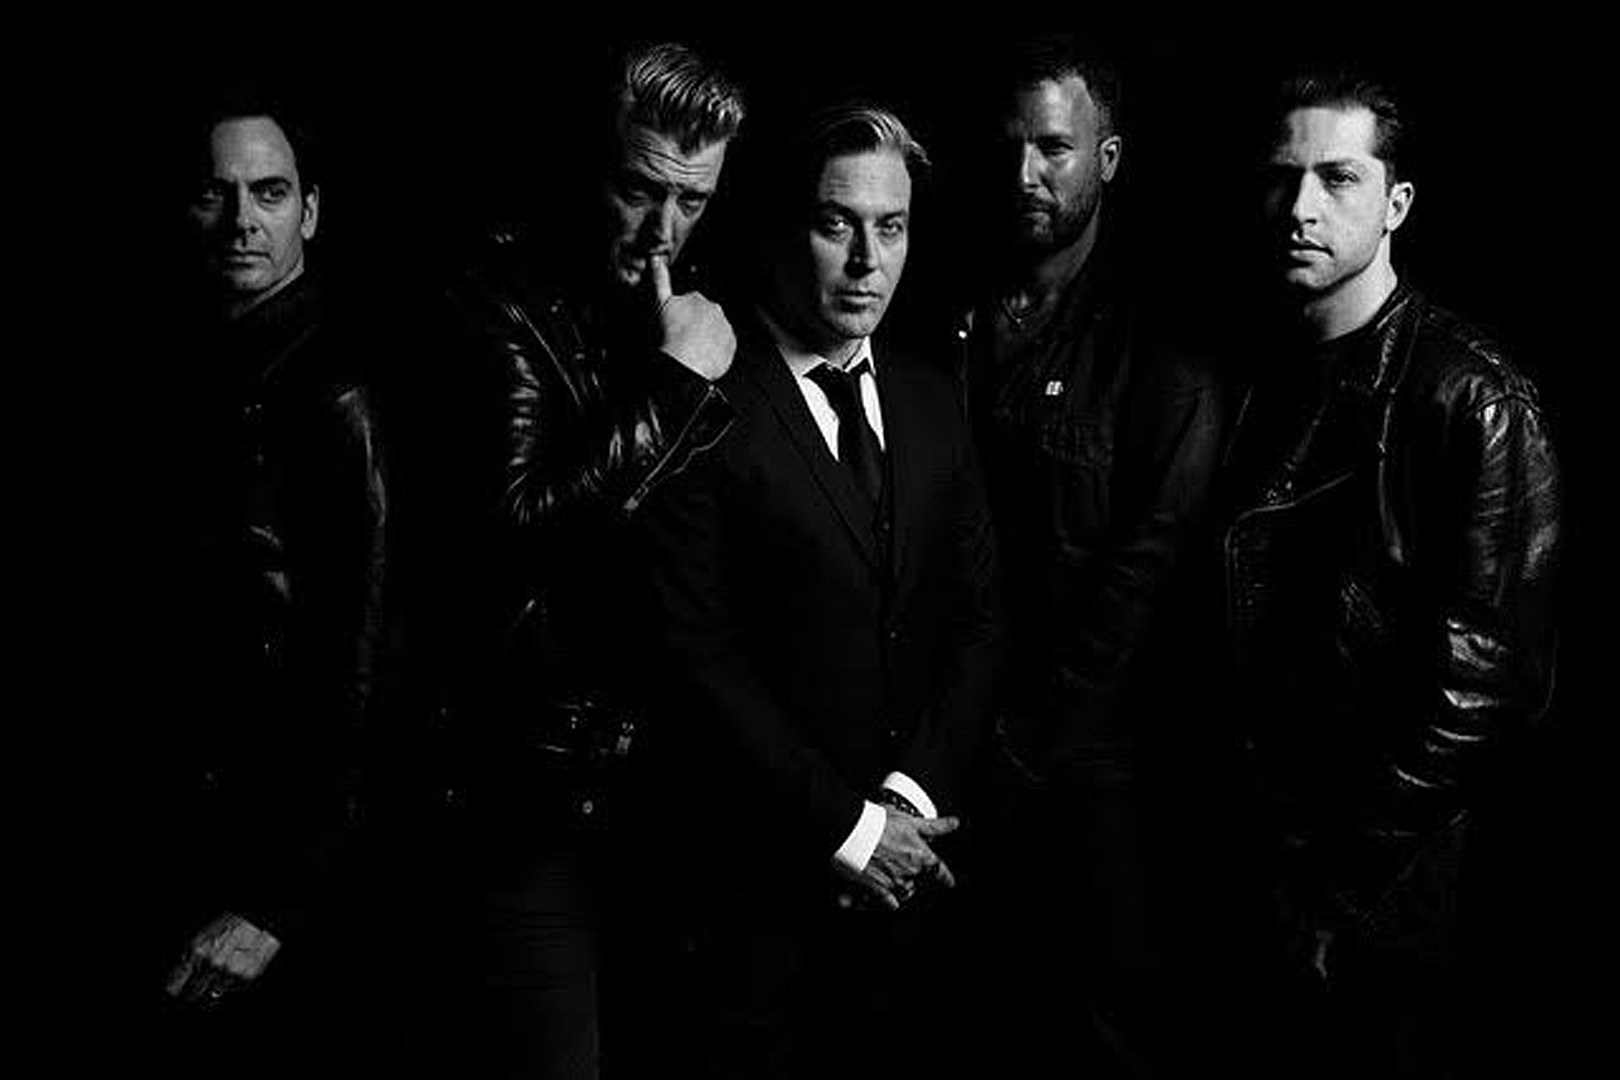 Queens of the Stone Age's 'Ellen' Appearance Cancelled, New Escape the Fate + More